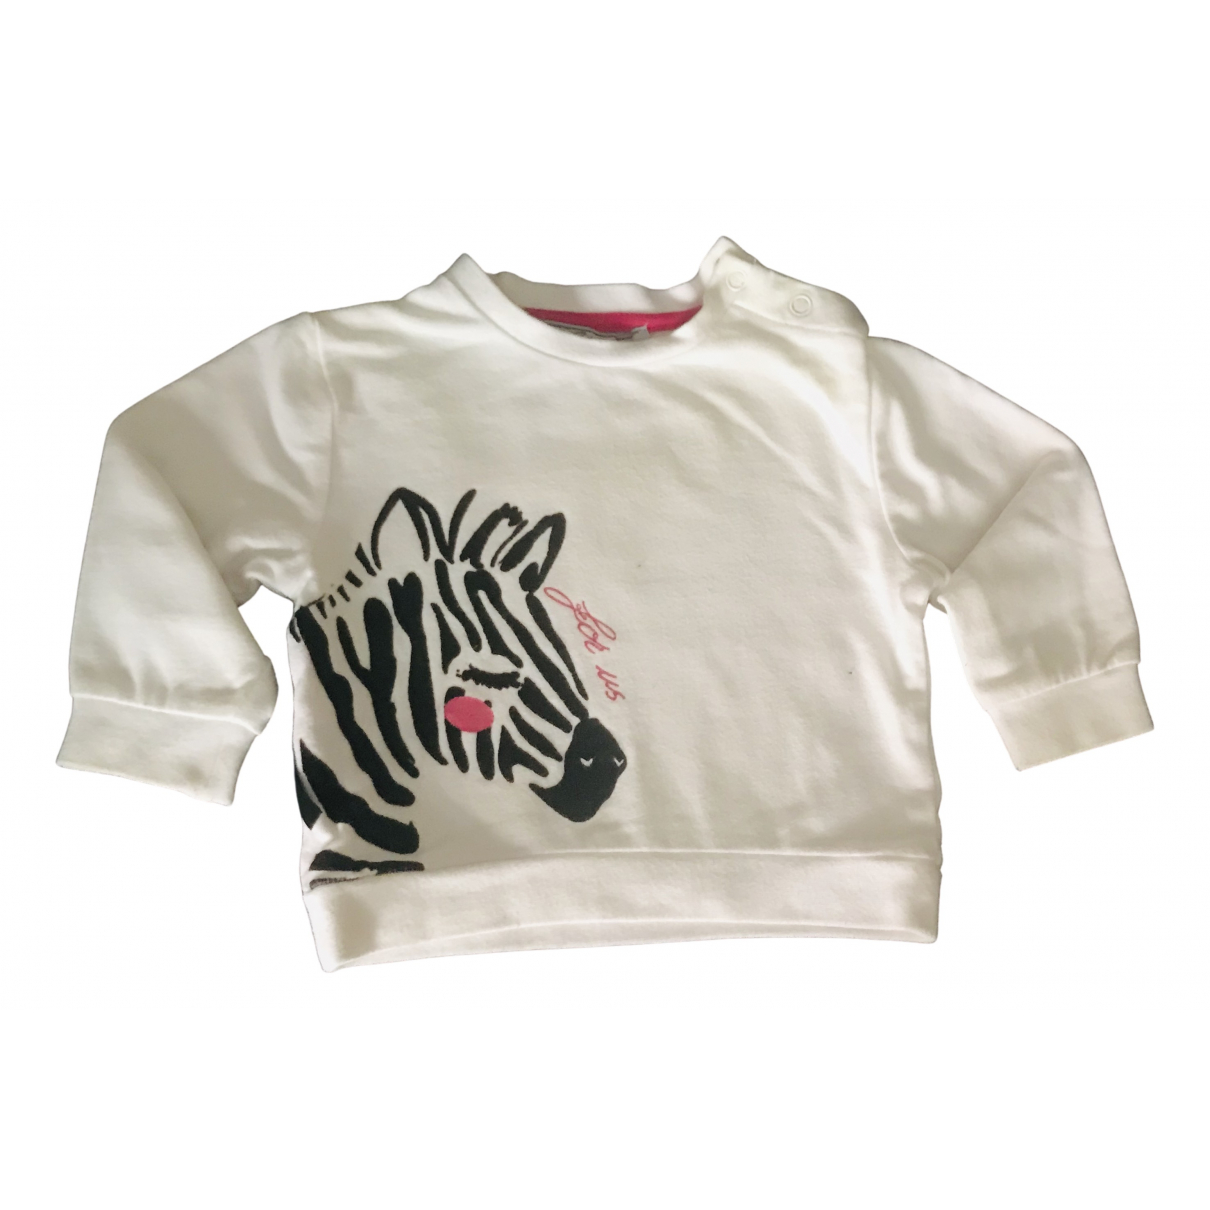 Cesare Paciotti N White Cotton Knitwear for Kids 6 months - up to 67cm FR